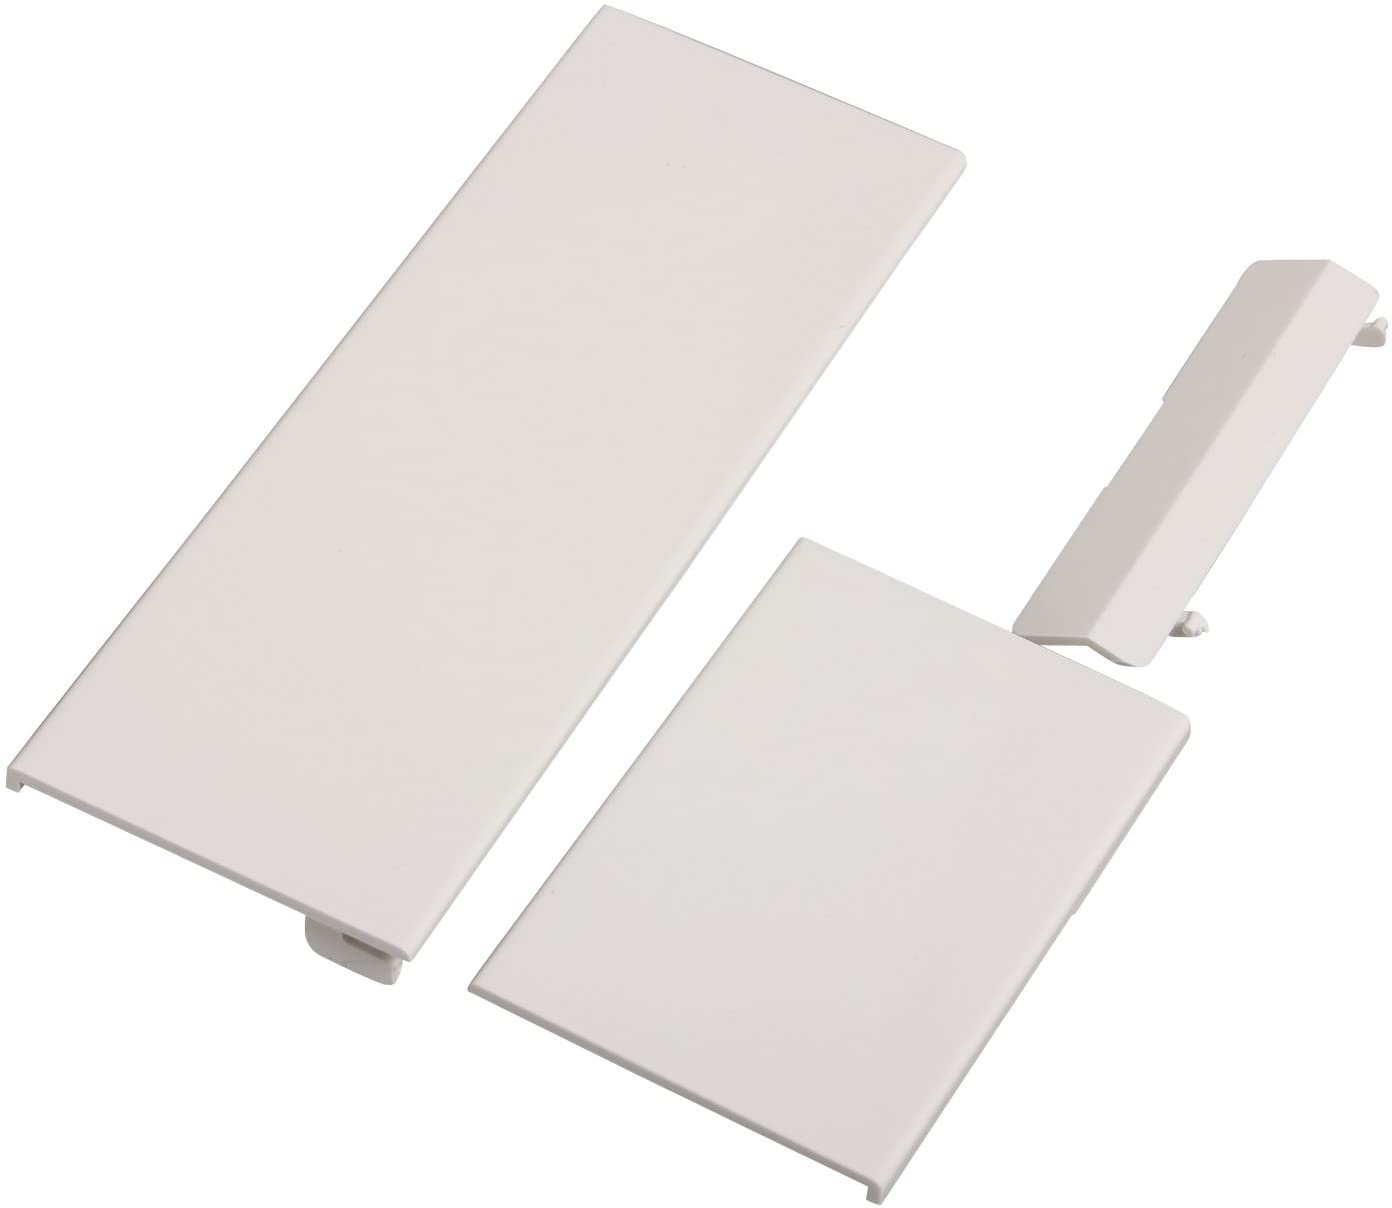 Suitable for Wii White Replacement Door,Timorn Replacement Repair Door for Wii Console Parts (1 Set White)